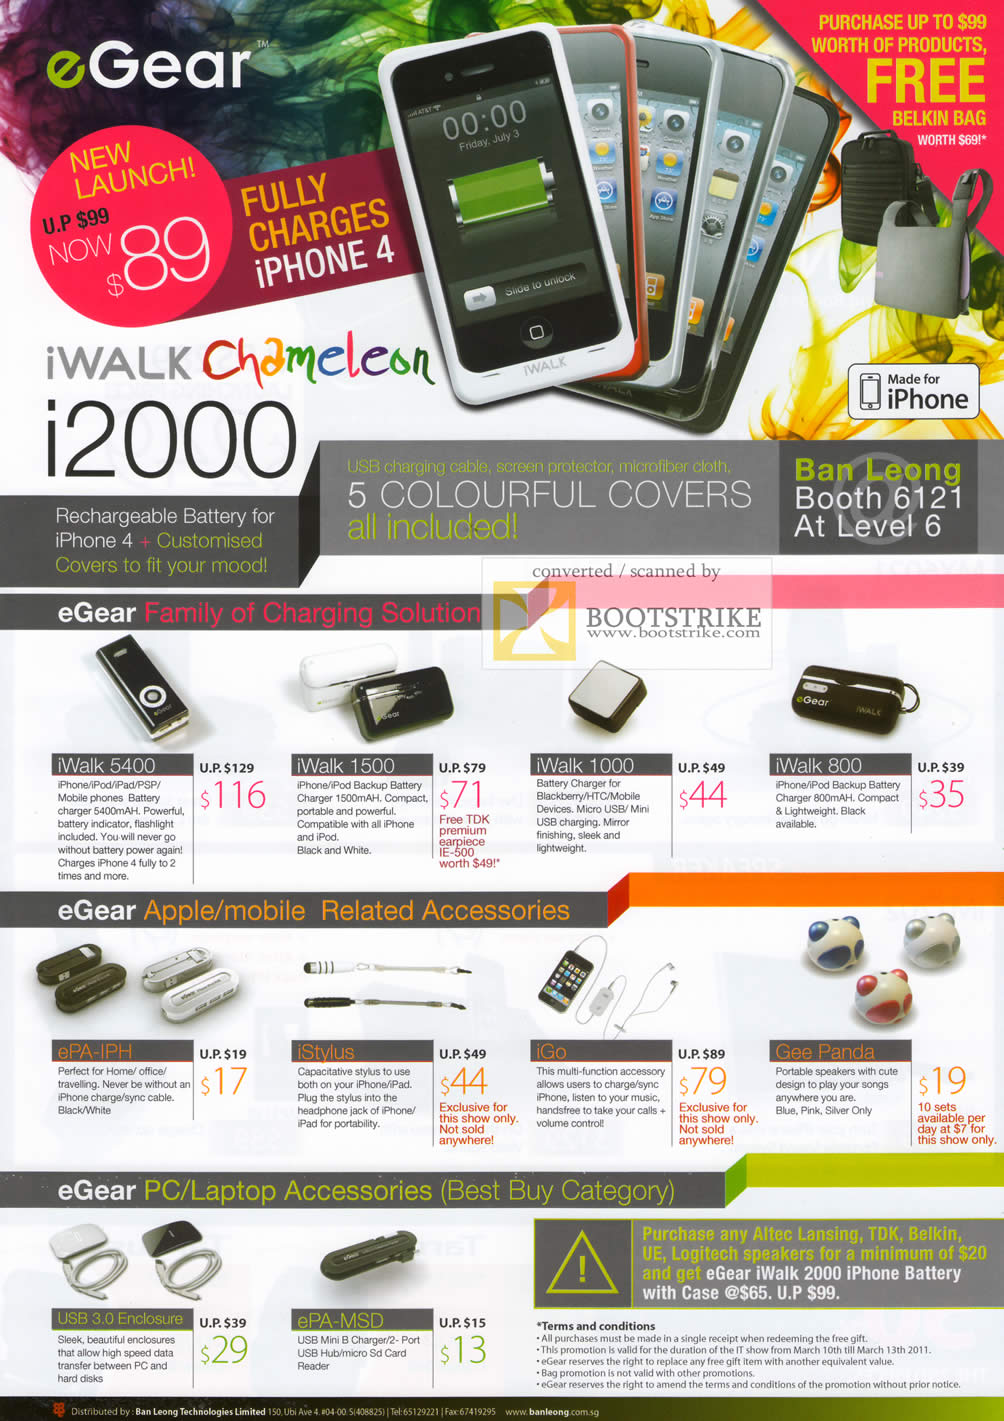 IT Show 2011 price list image brochure of Ban Leong EGear IWalk Chameleon I2000 IPhone Battery IWalk EPA-IPH IStylus IGo Gee Panda Enclosure EPA-MSD